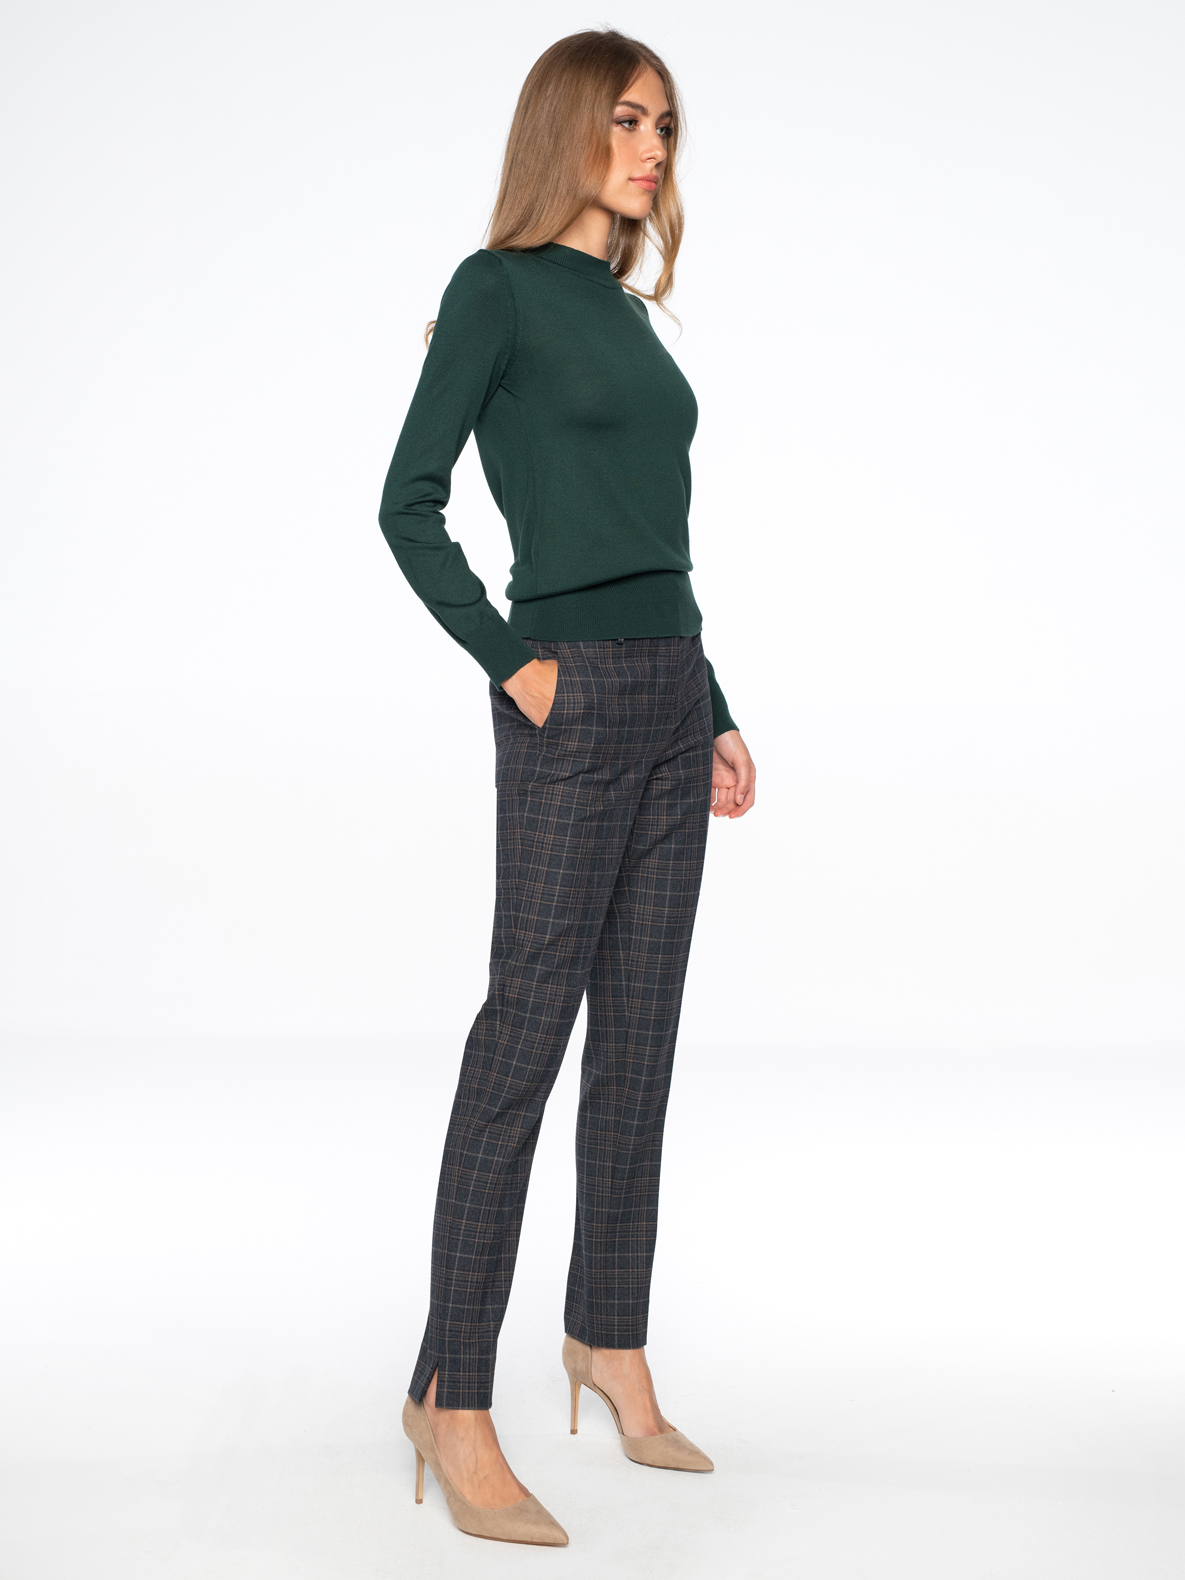 Sweater Donna green